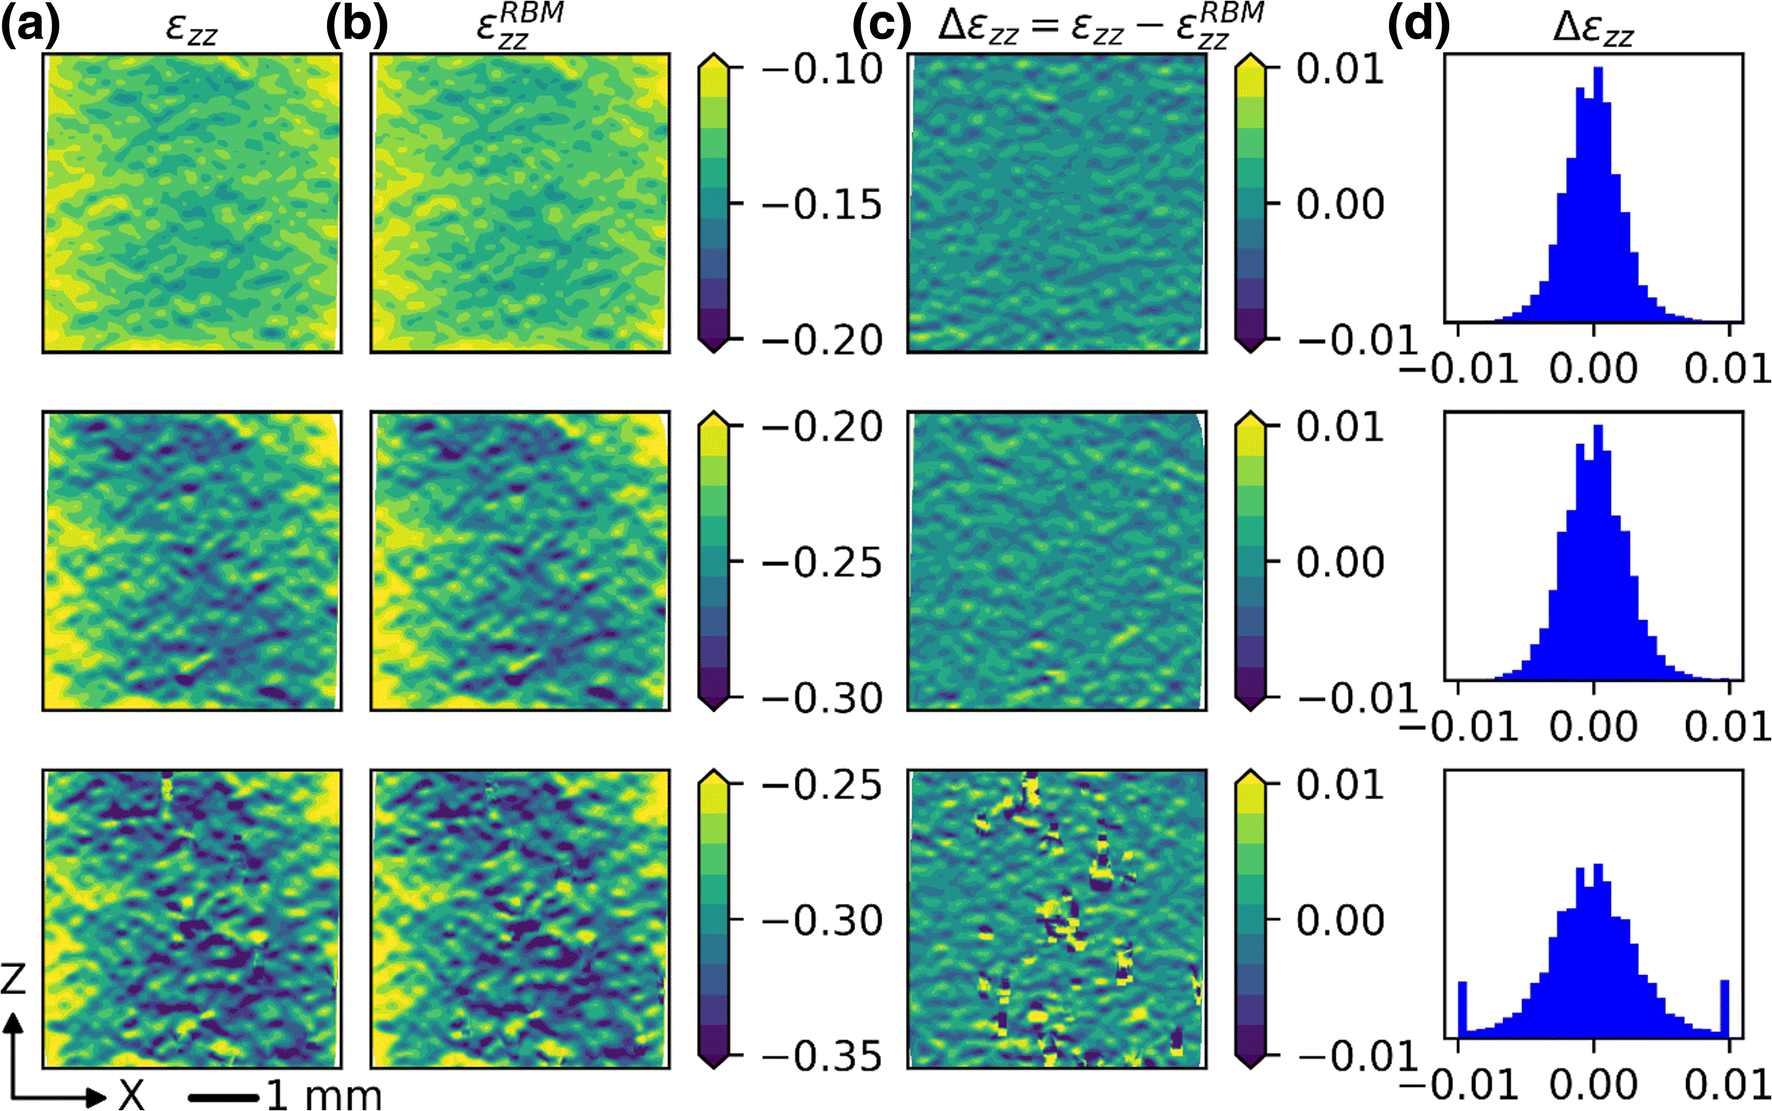 Effect of Fragile Speckle Patterns on Accuracy of Digital